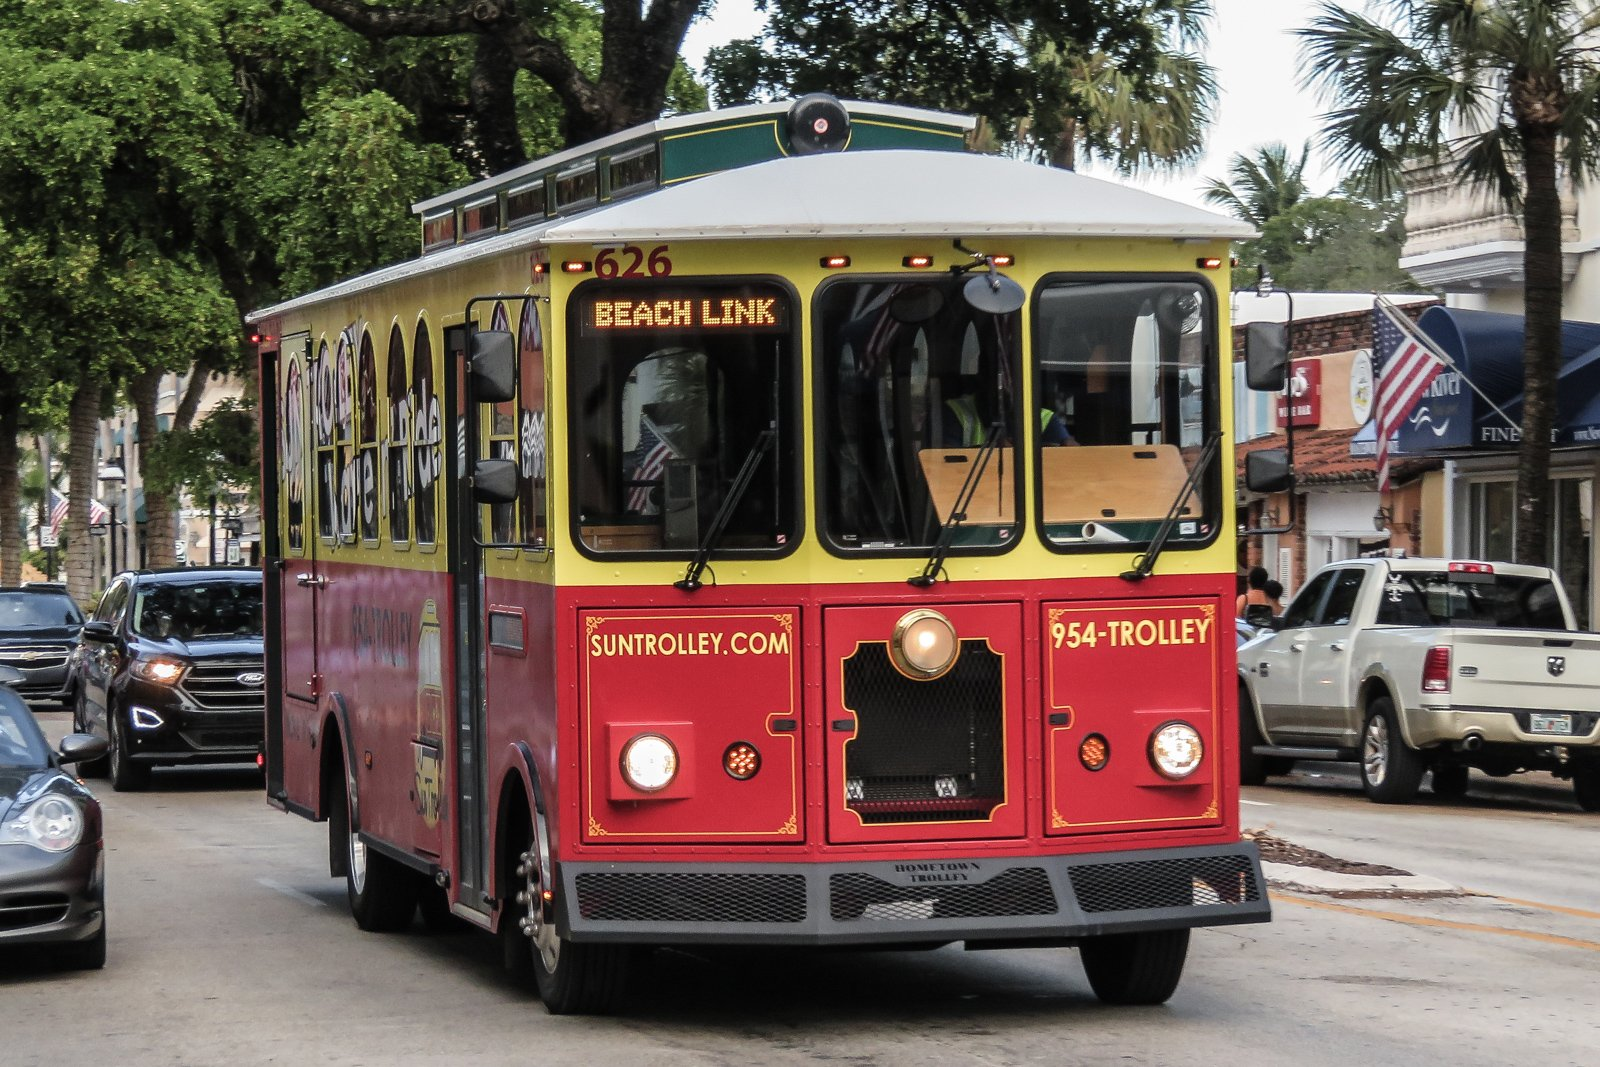 Things to do in Fort Lauderdale, ride the free Sun Trolley bus service along Las Olas Boulevard.